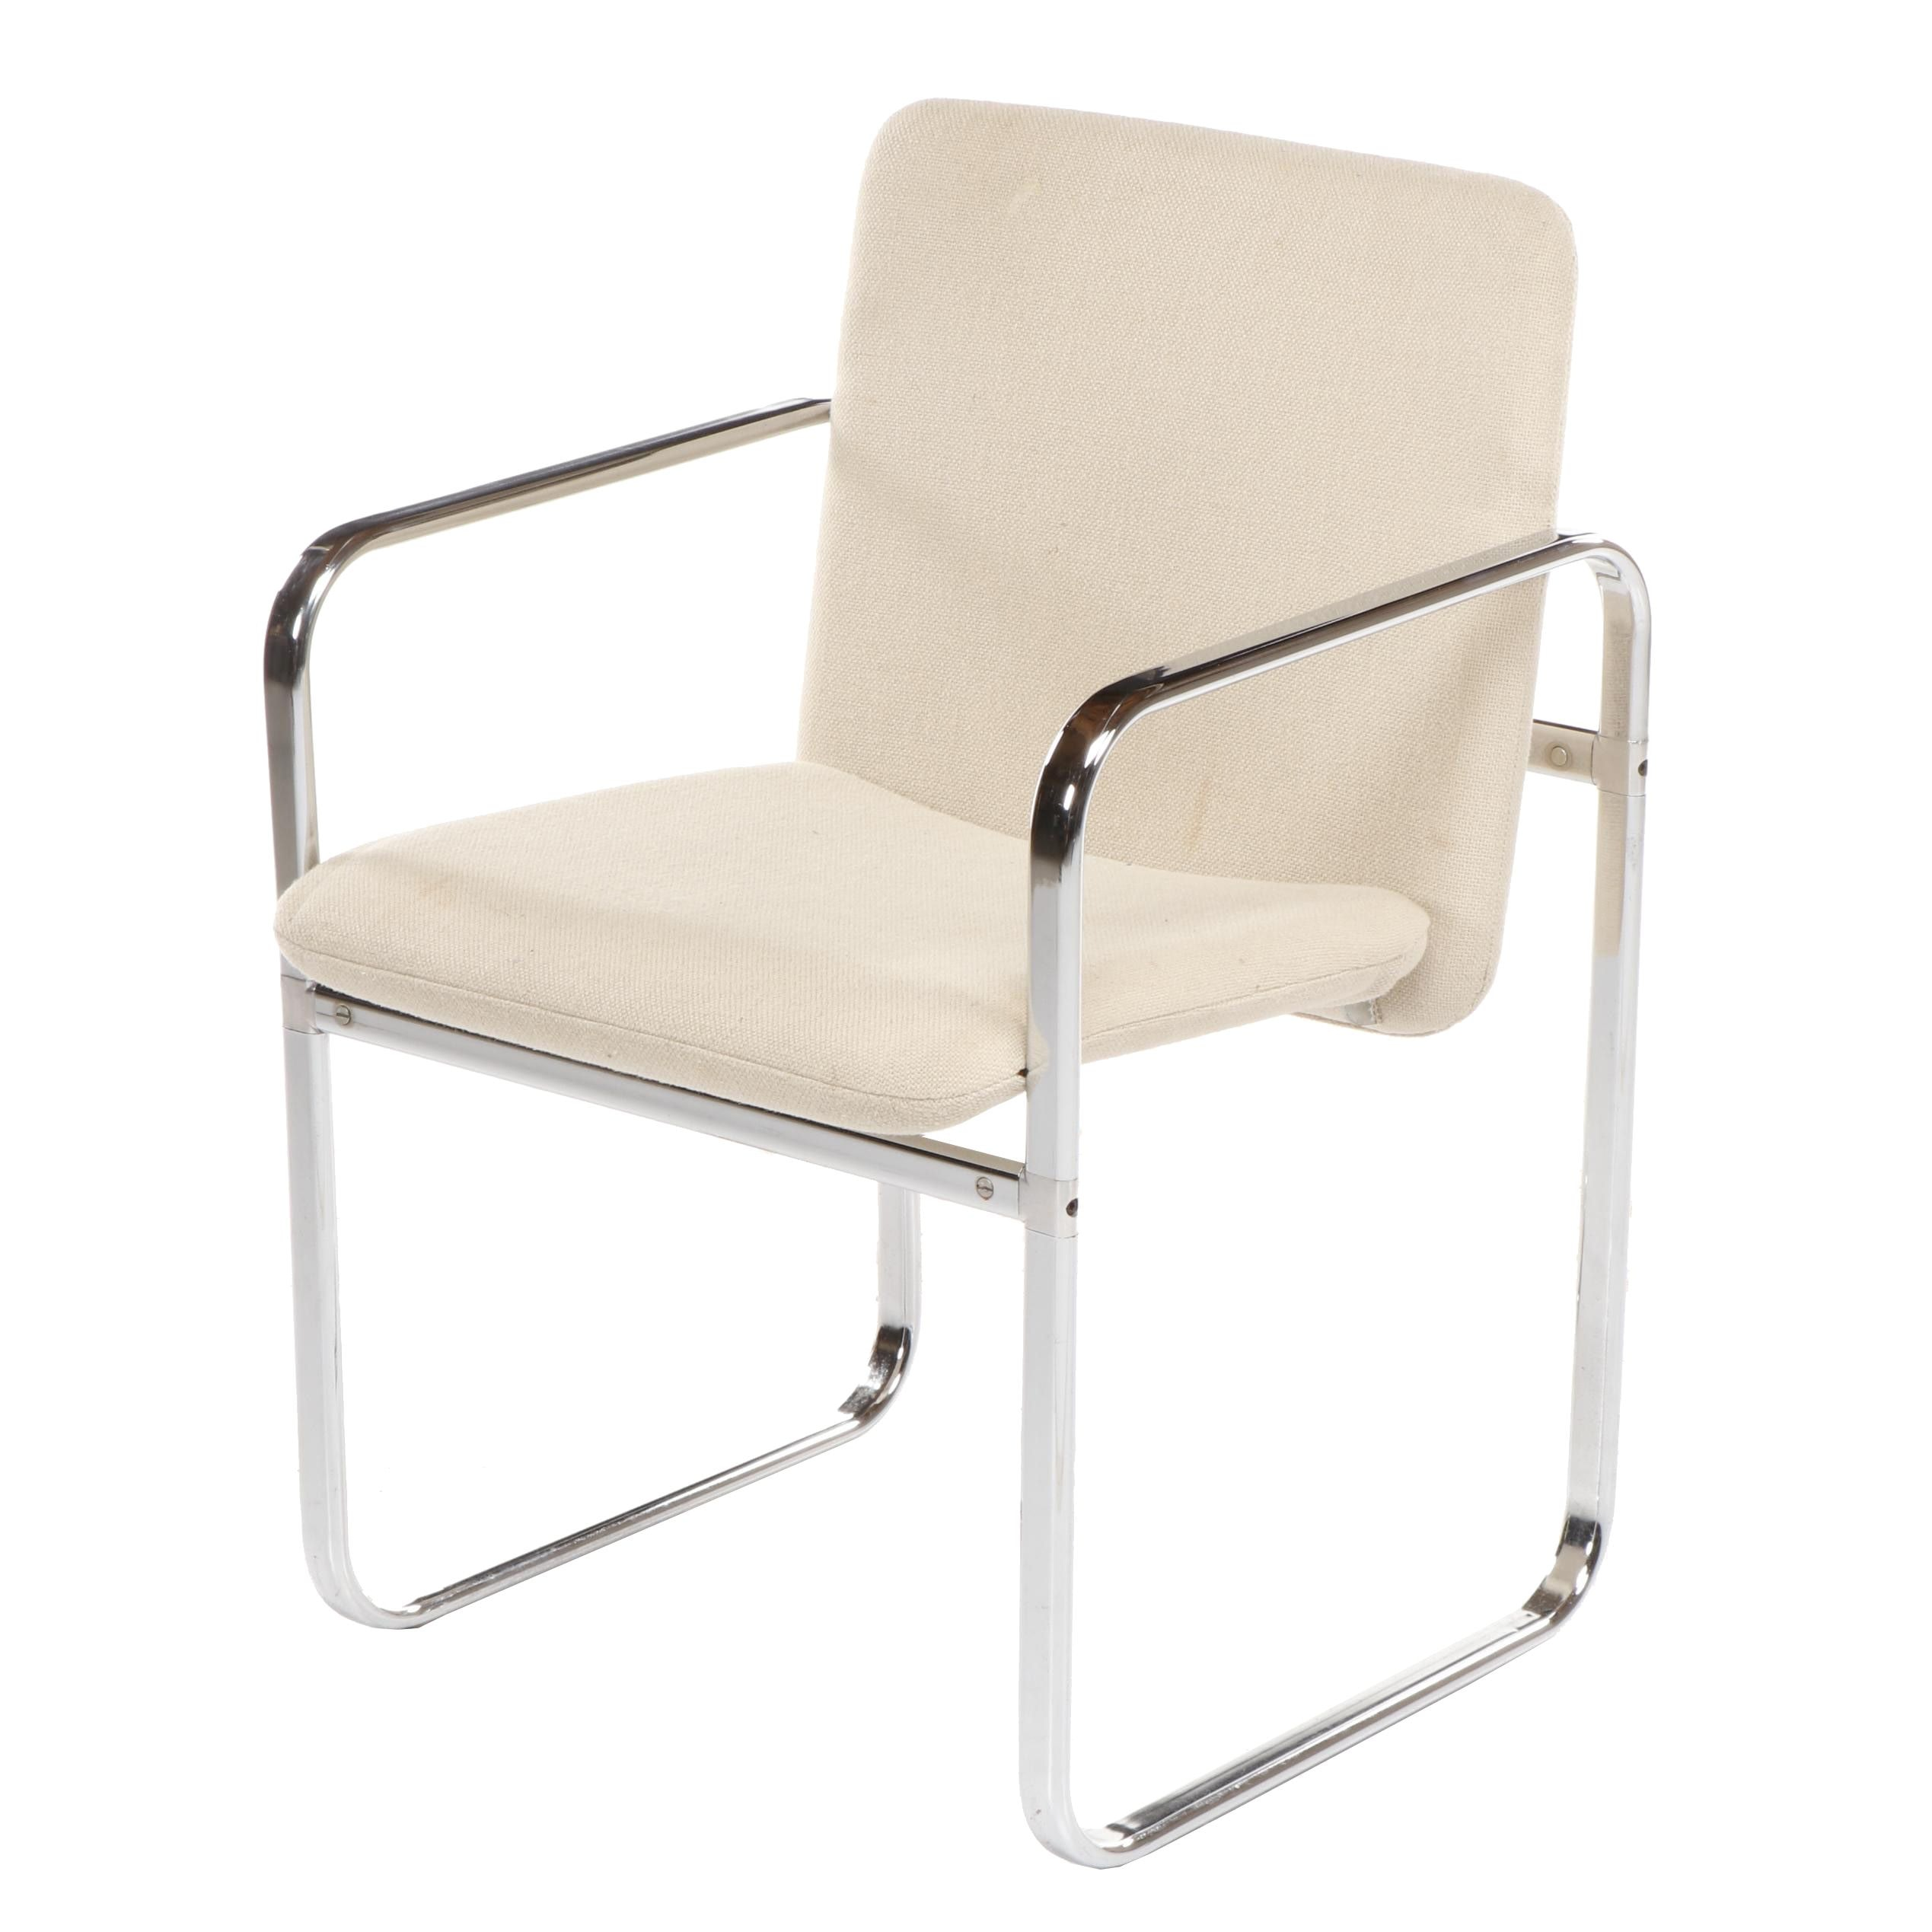 Modern Style Chair with Chrome Frame and Beige Upholstery